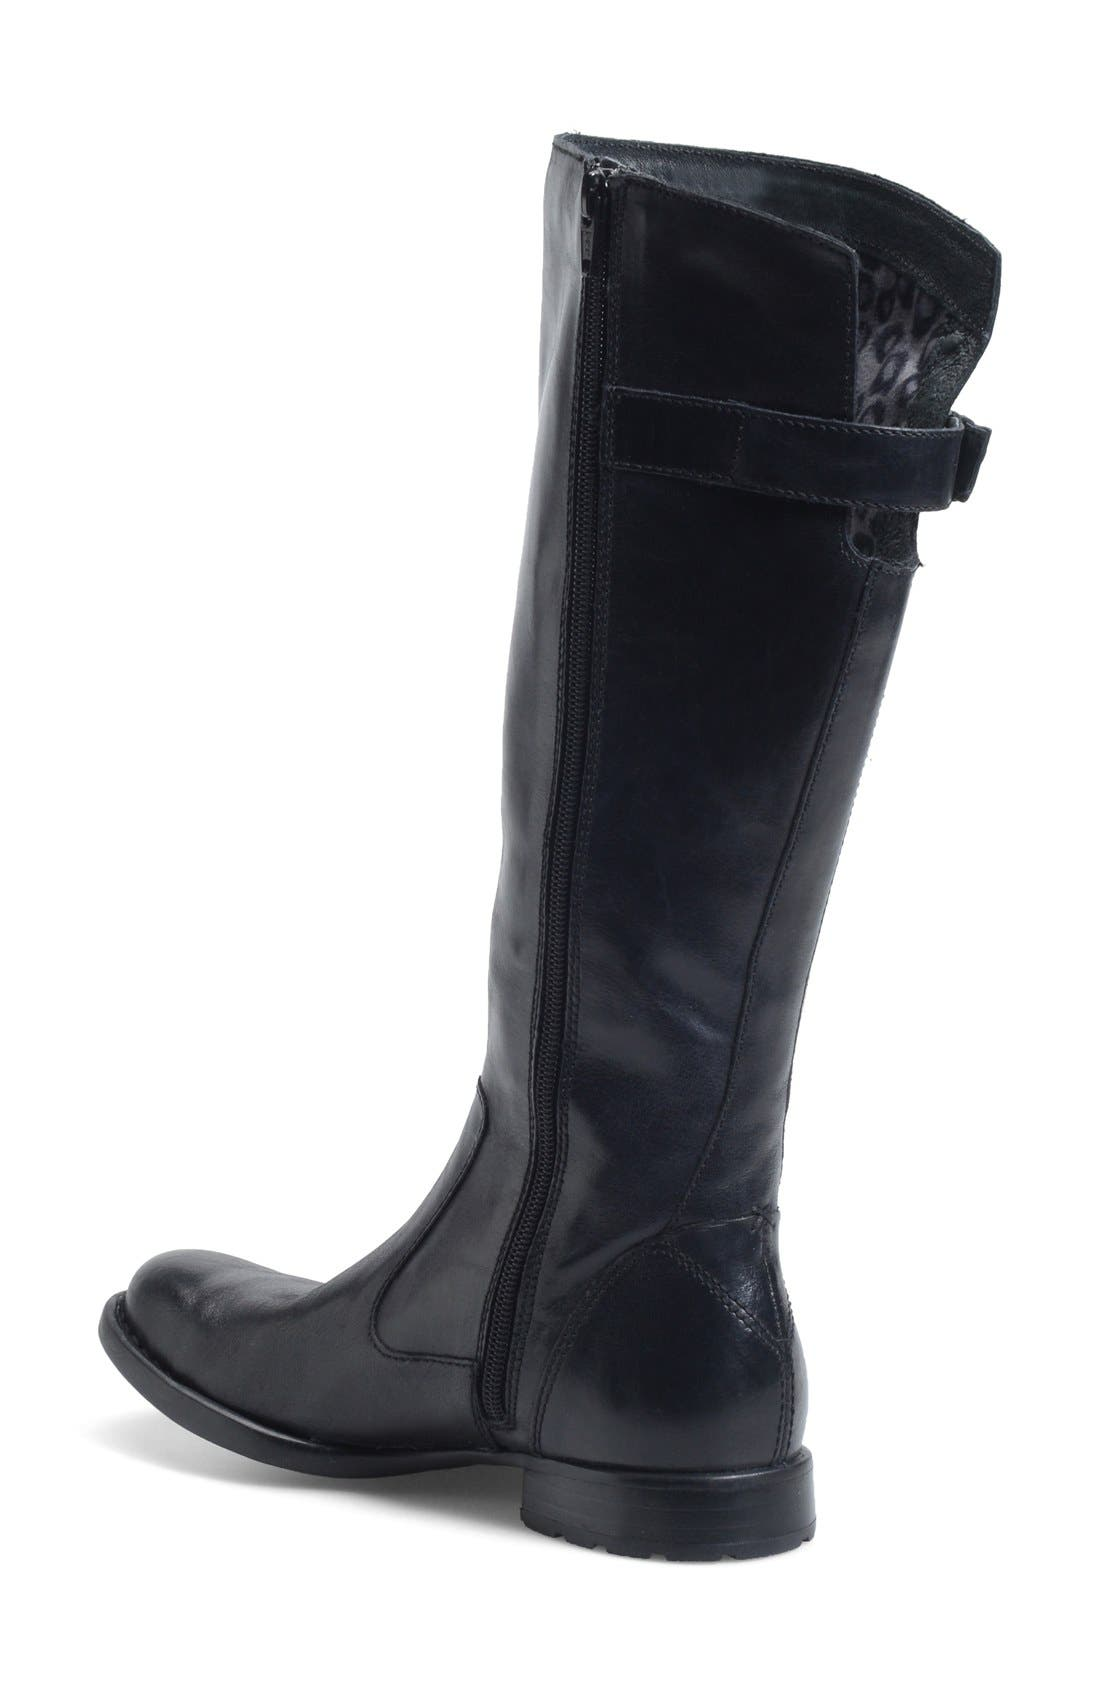 Alternate Image 2  - Børn 'Lottie' Round Toe Boot (Women)